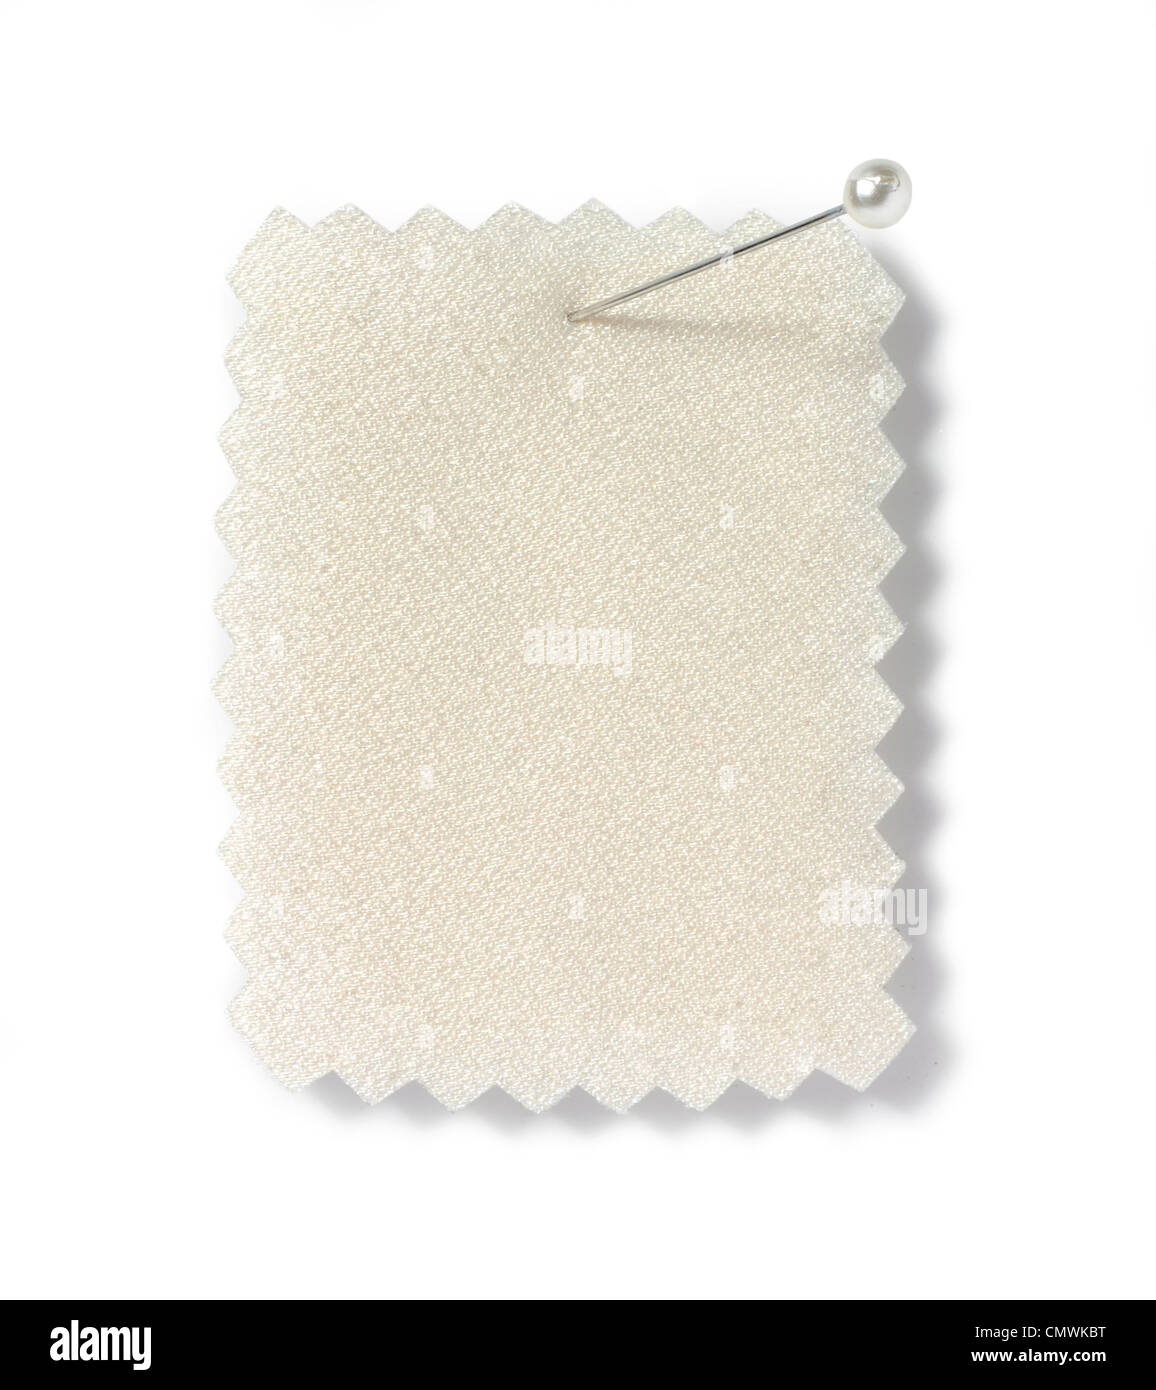 pinned cloth sample cut out white background - Stock Image